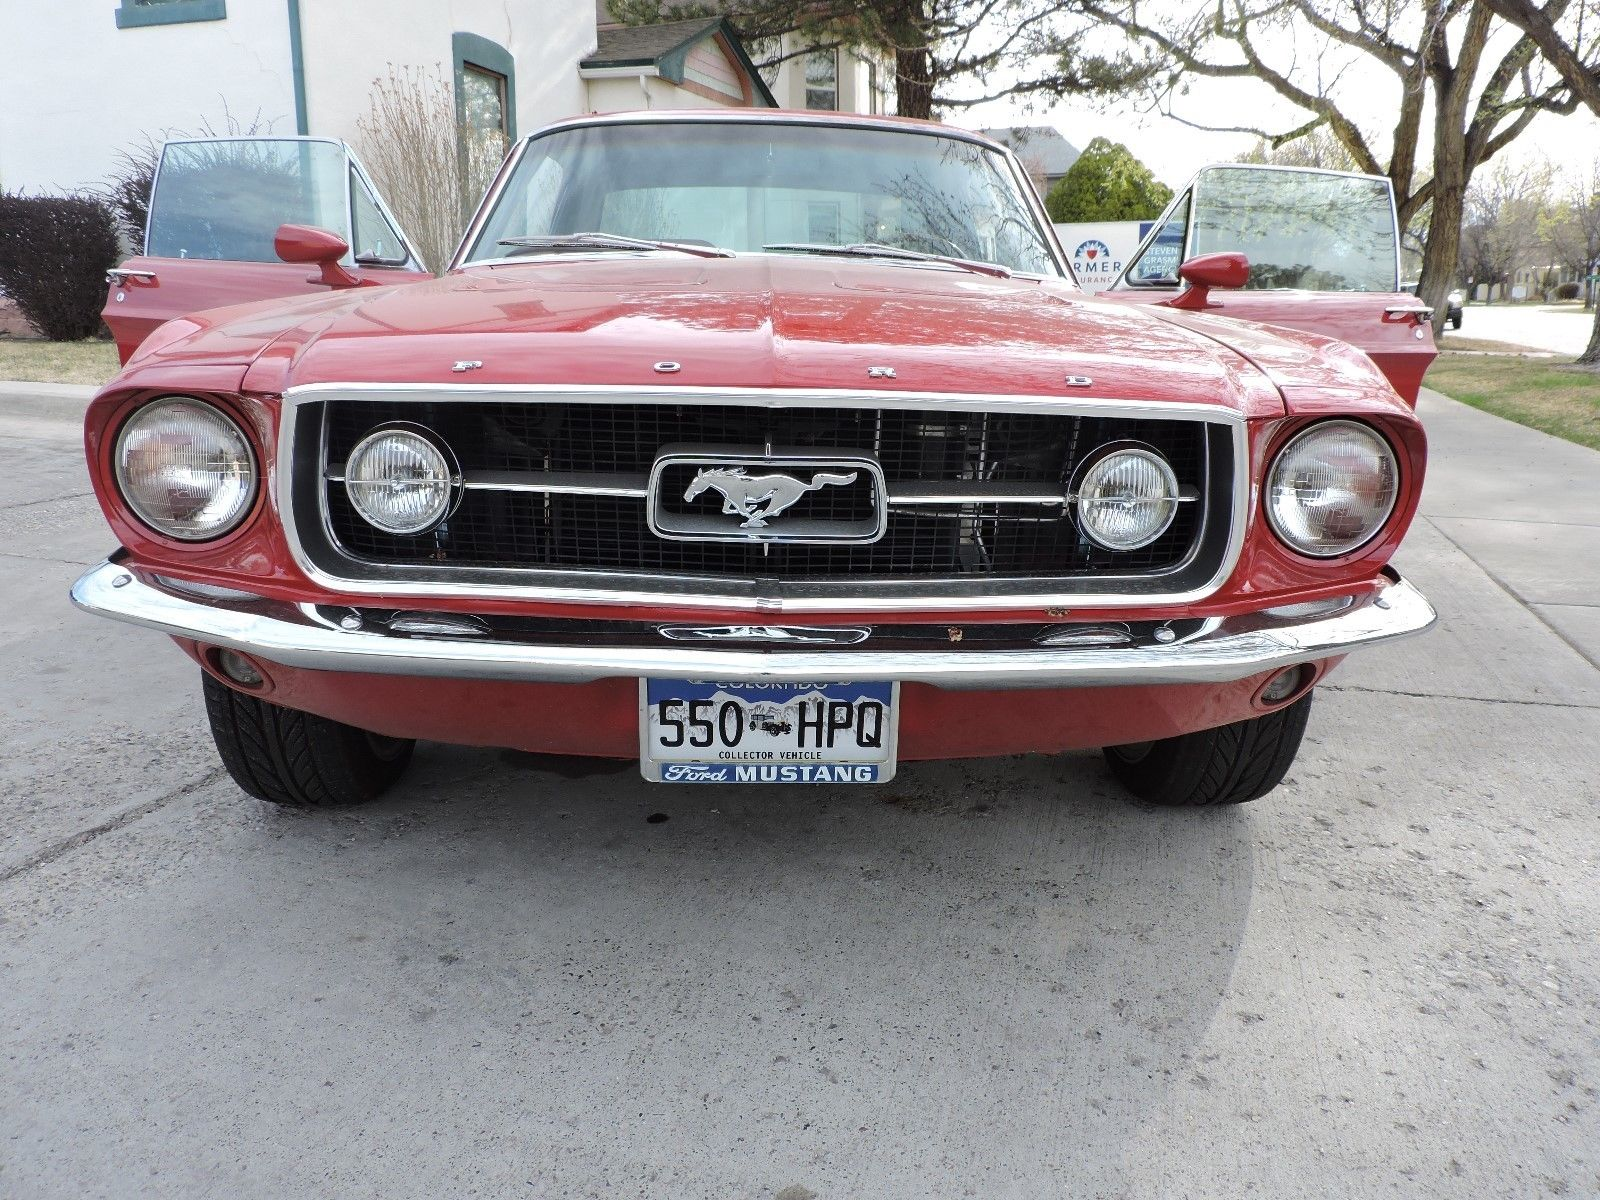 Amazing 1967 ford mustang gt 1967 ford mustang 67 68 gt shelby wheels cougar fastback q s 69 70 65 66 ac 2017 2018